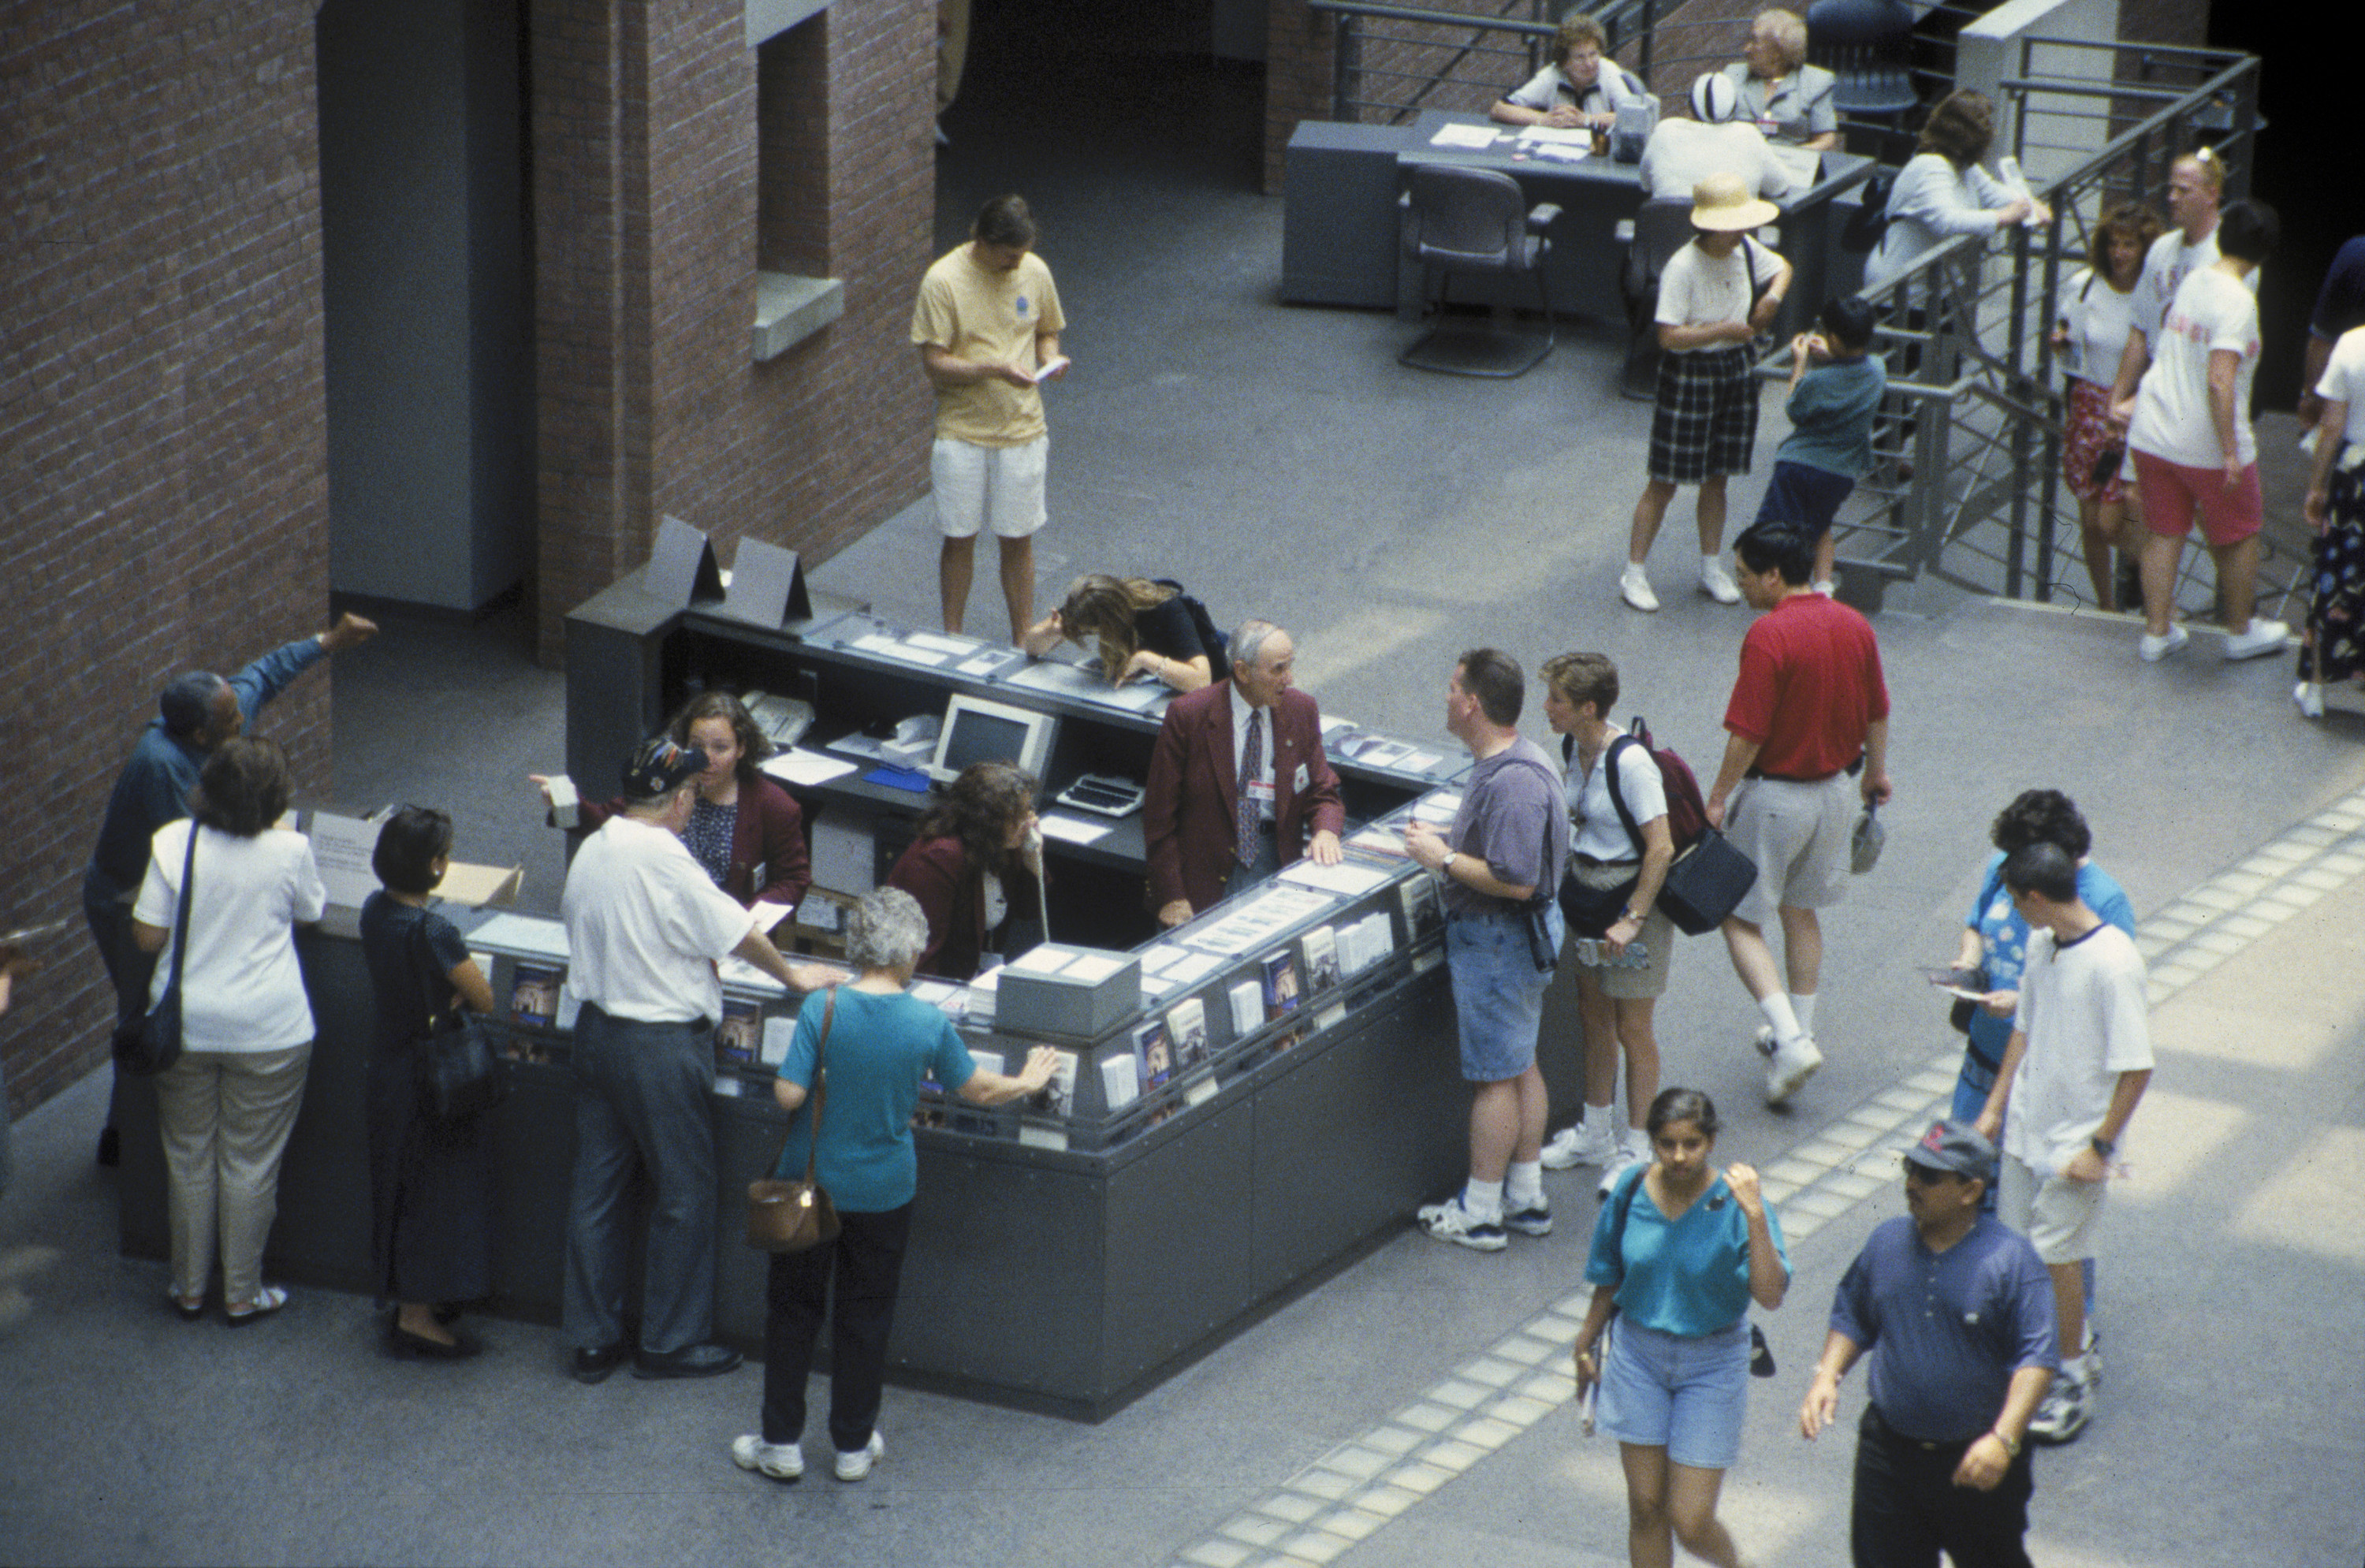 Visitors at the information desk in the Hall of Witness at the U.S. Holocaust Memorial Museum.